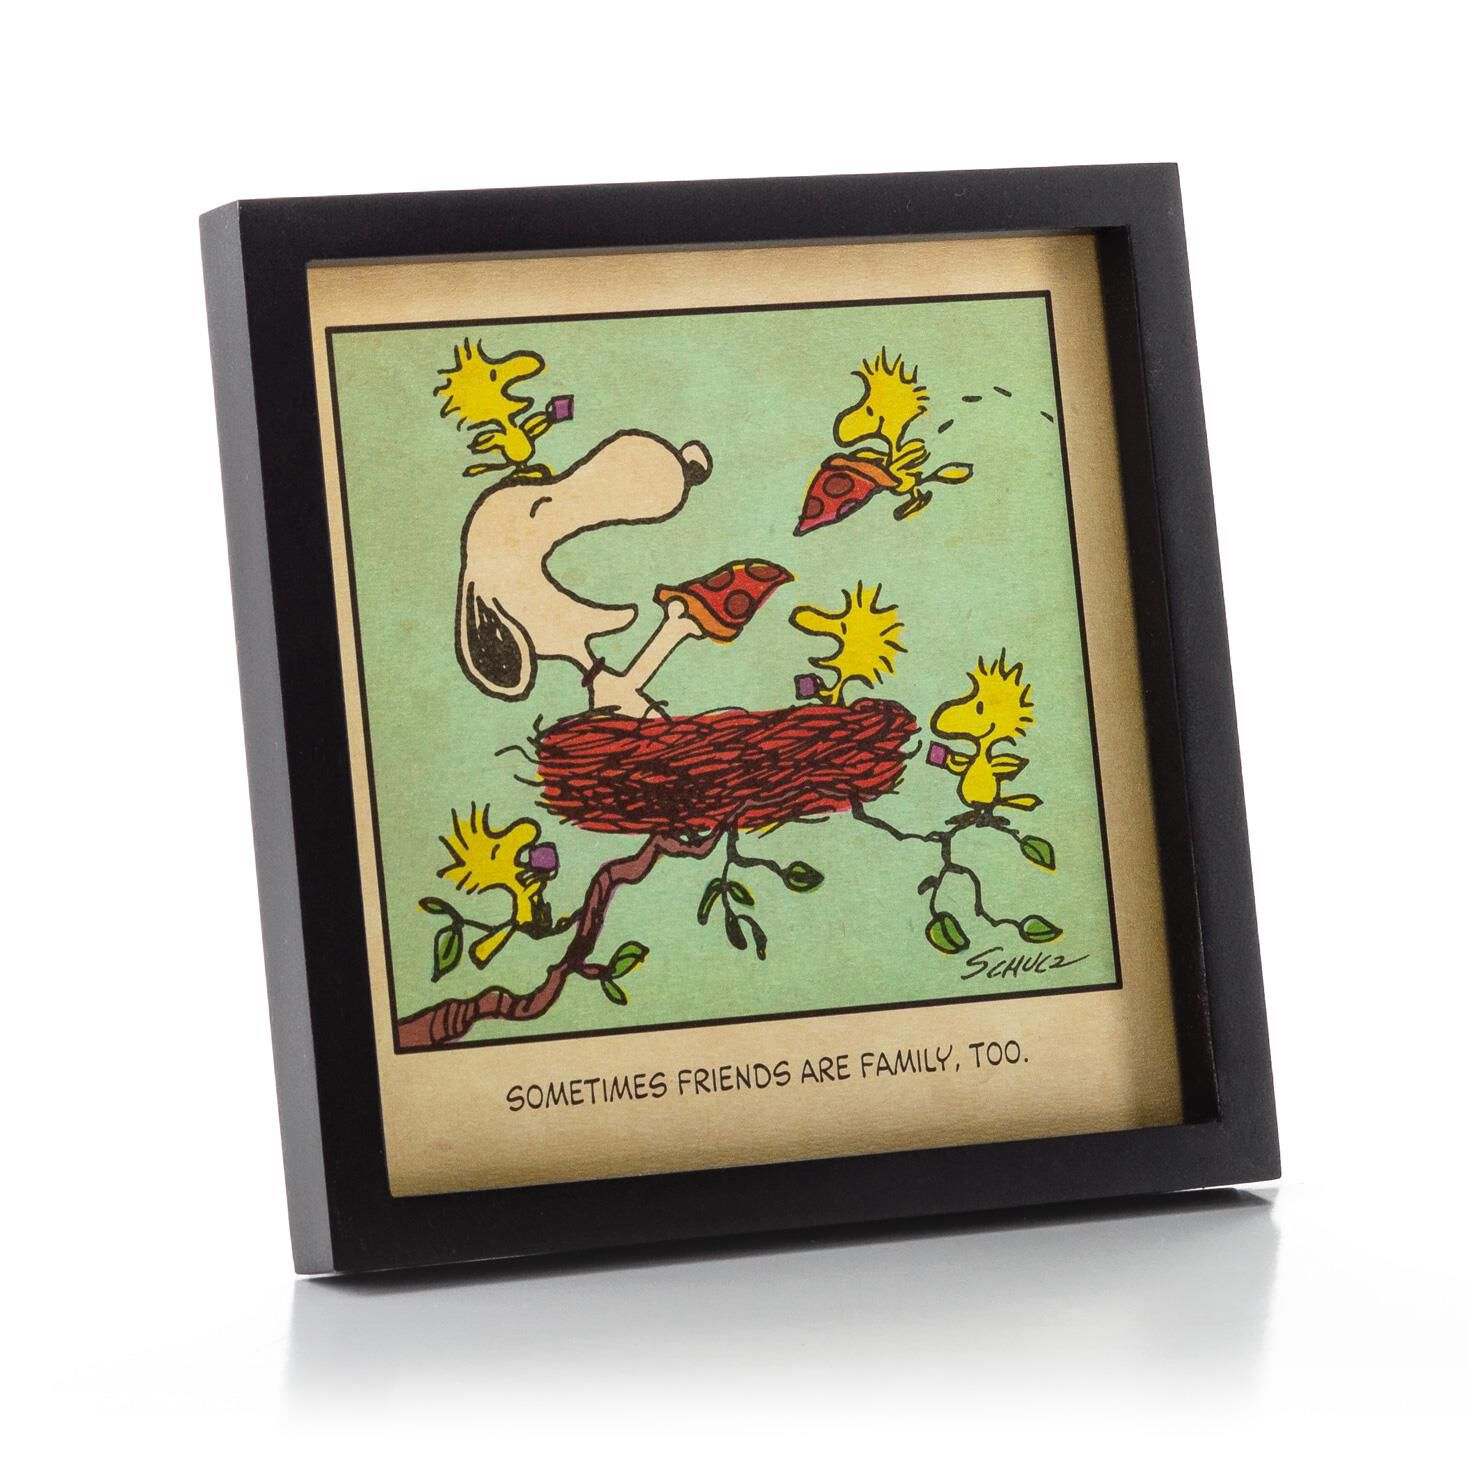 Peanuts® Snoopy and Woodstock Friends are Family Framed Print  sc 1 st  Hallmark & Framed Art Canvas Prints and Wall Art | Hallmark